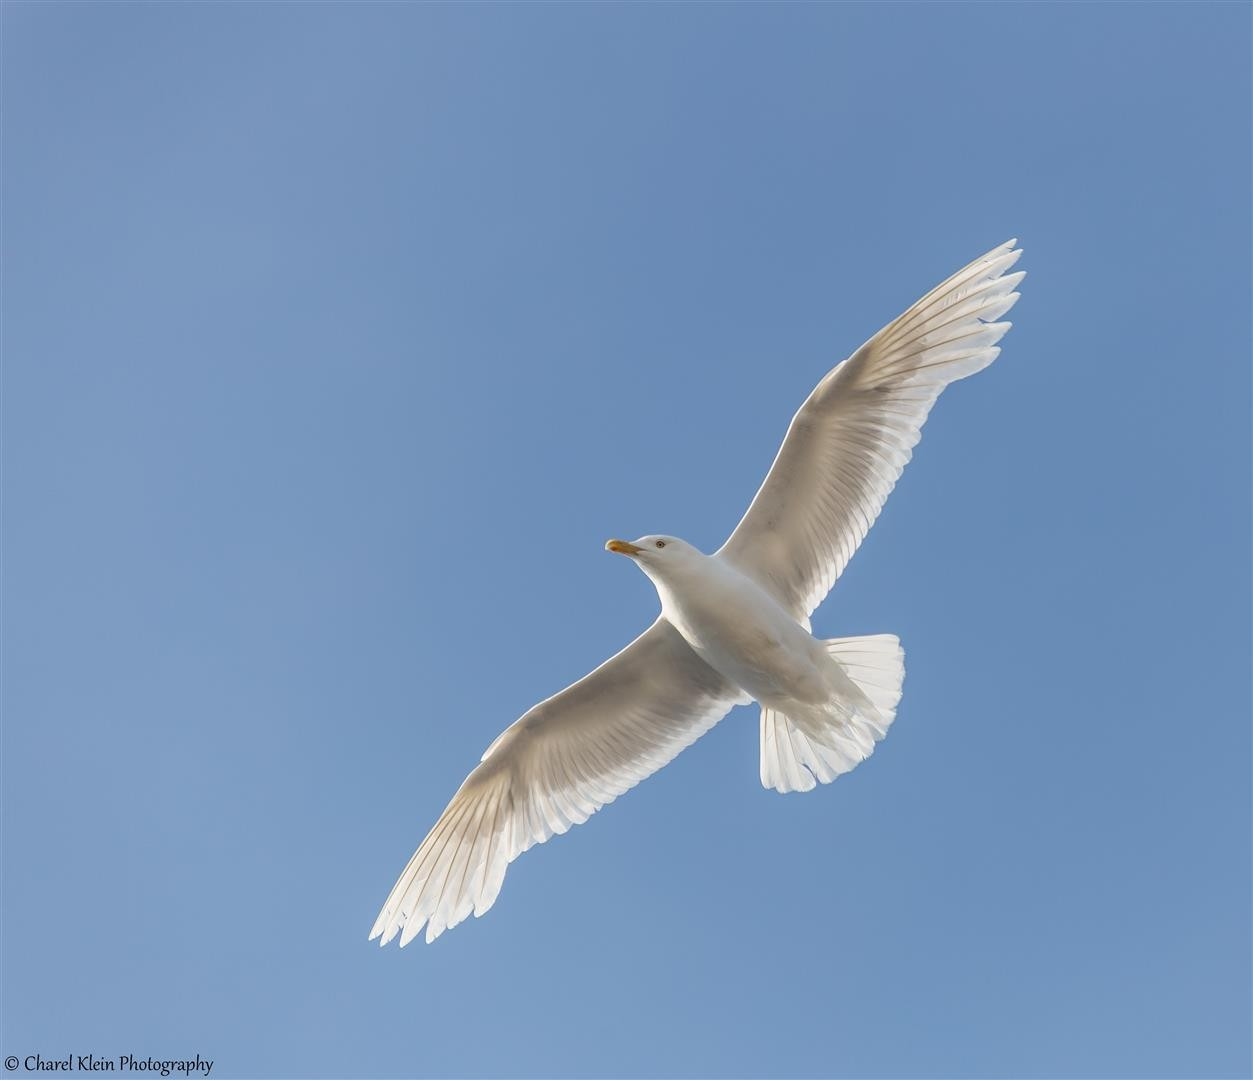 Glaucous Gull (Larus hyperboreus) -- Traill / Karupelv Vally Project / Greenland -- 2015